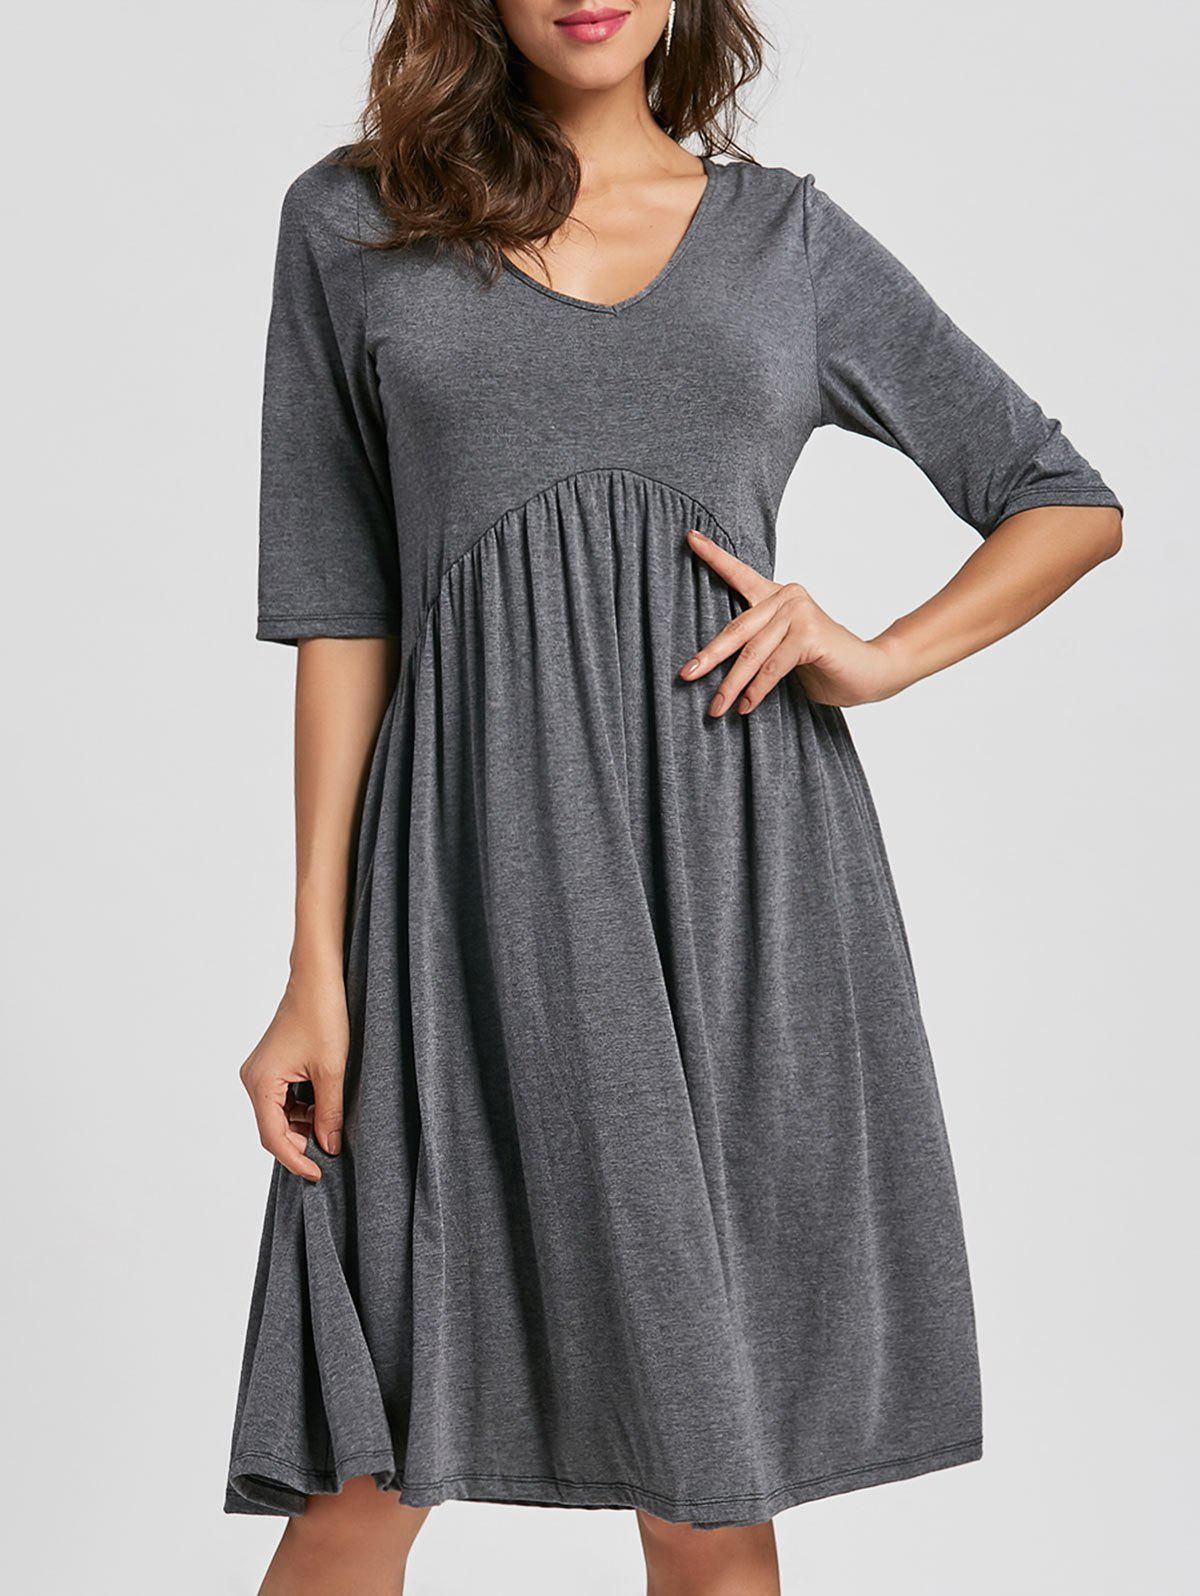 Casual Half Sleeve Swing Dress - GRAY XL